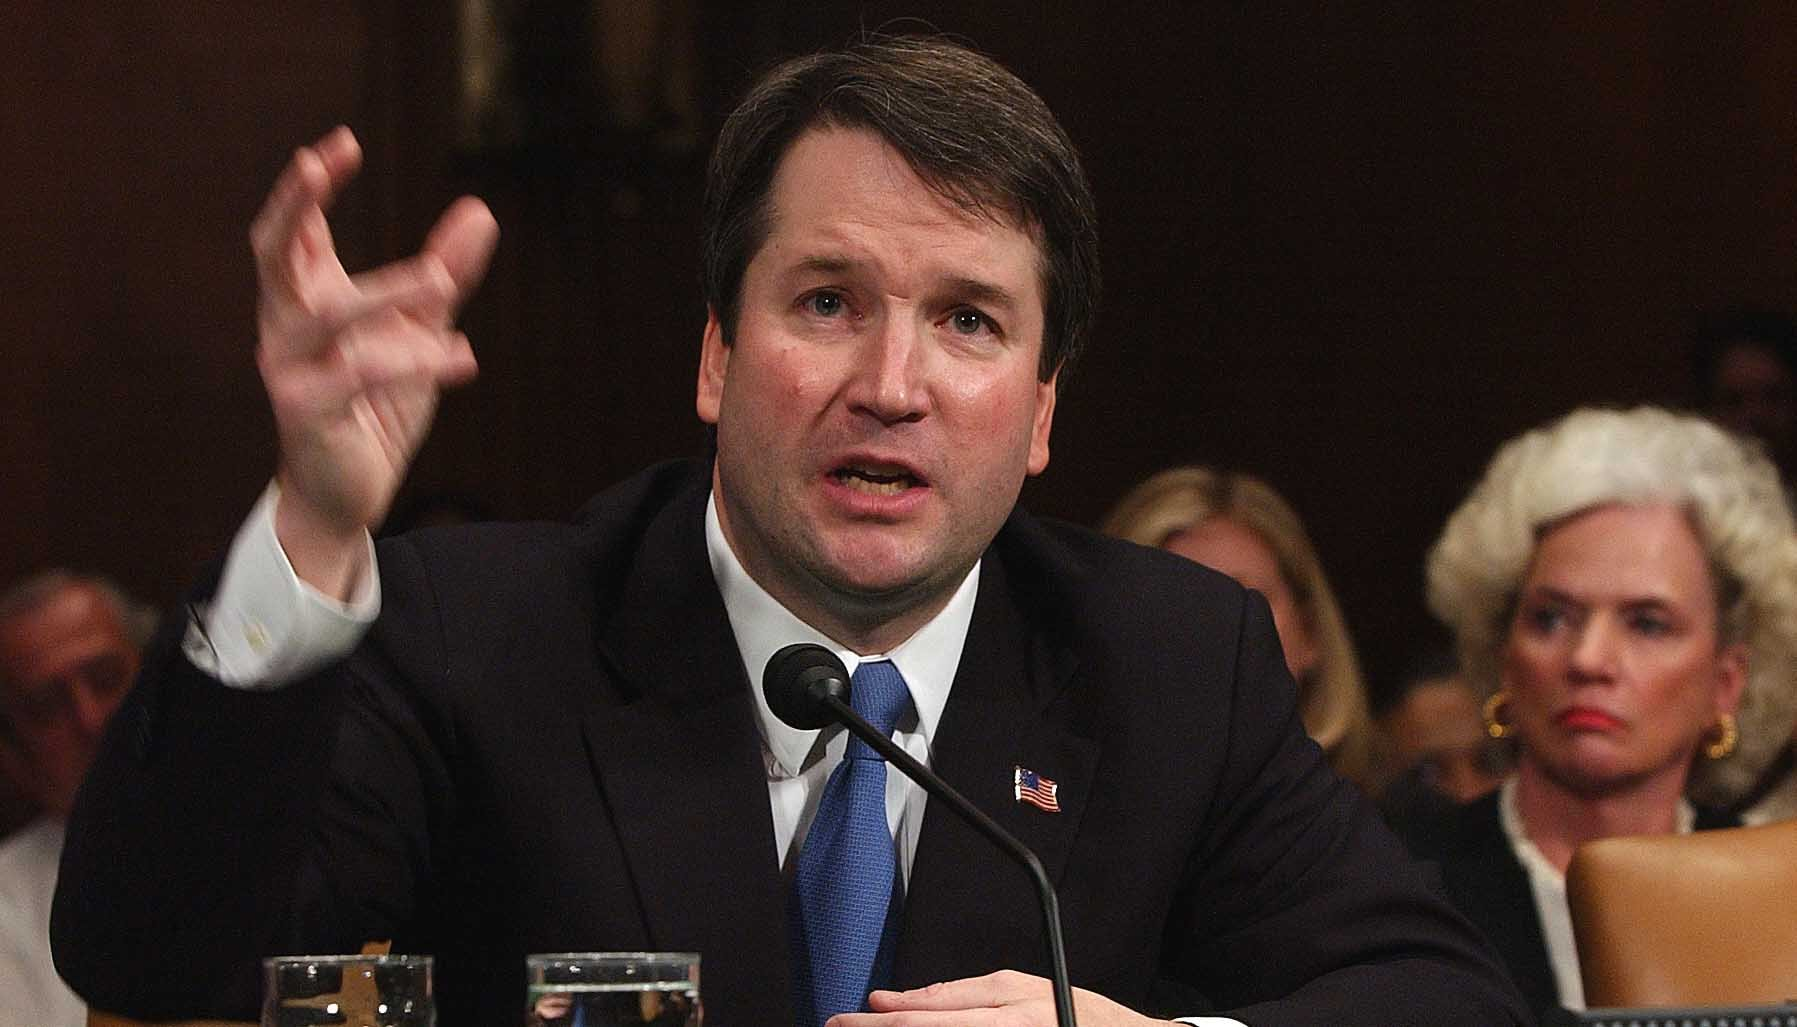 Second Amendment Foundation Calls Senate to Quickly Confirm Brett Kavanaugh